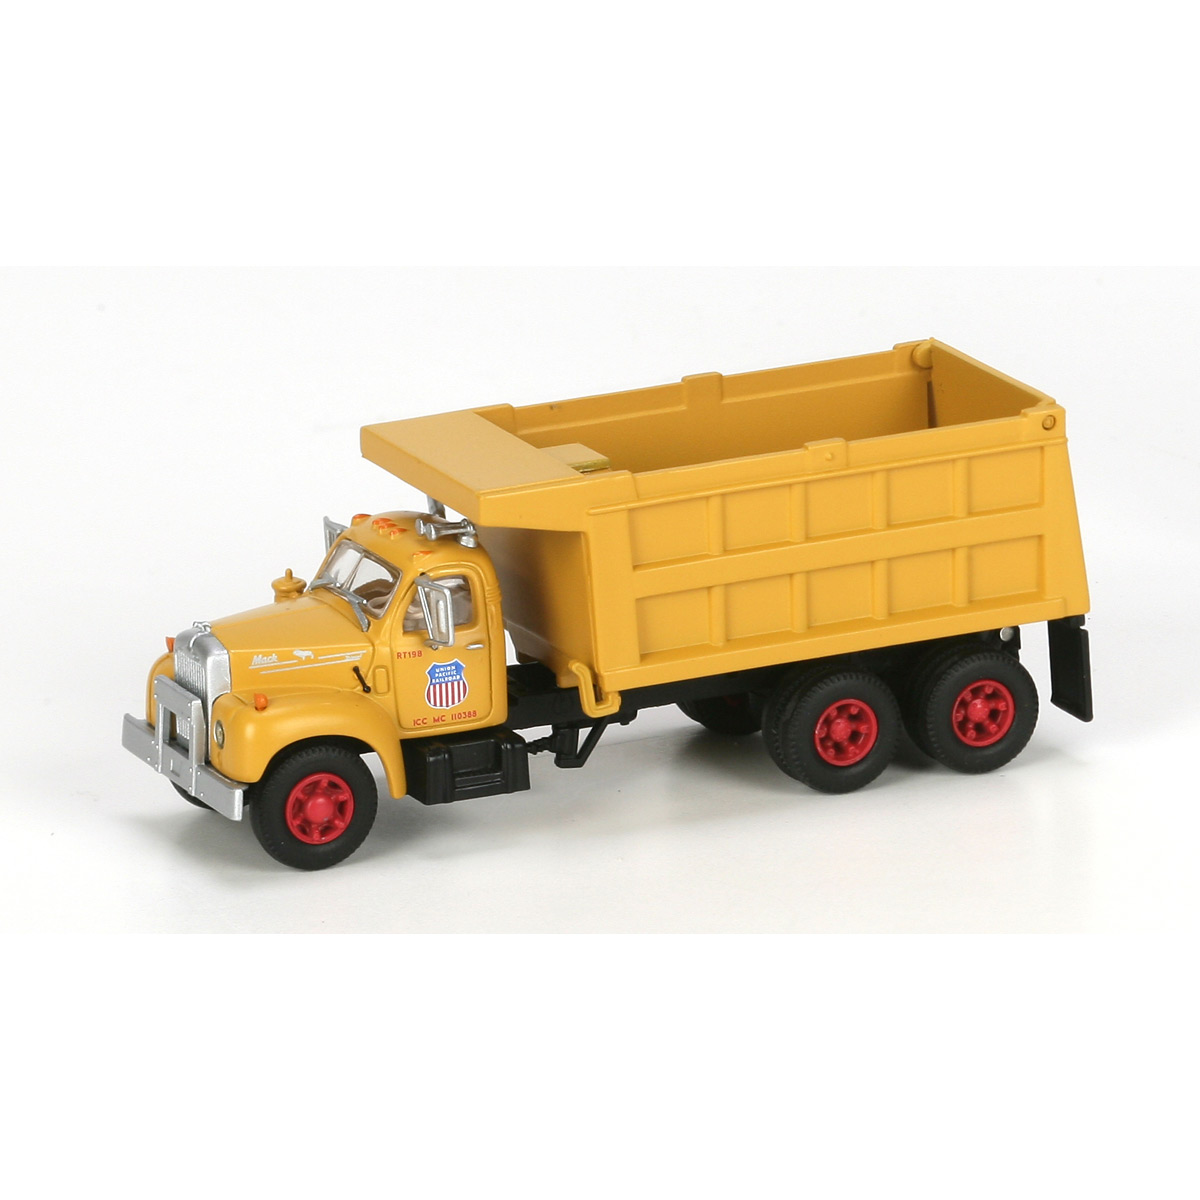 Athearn N Scale 3 Axle Tractor : Ho rtr mack b dump truck up ath athearn trains